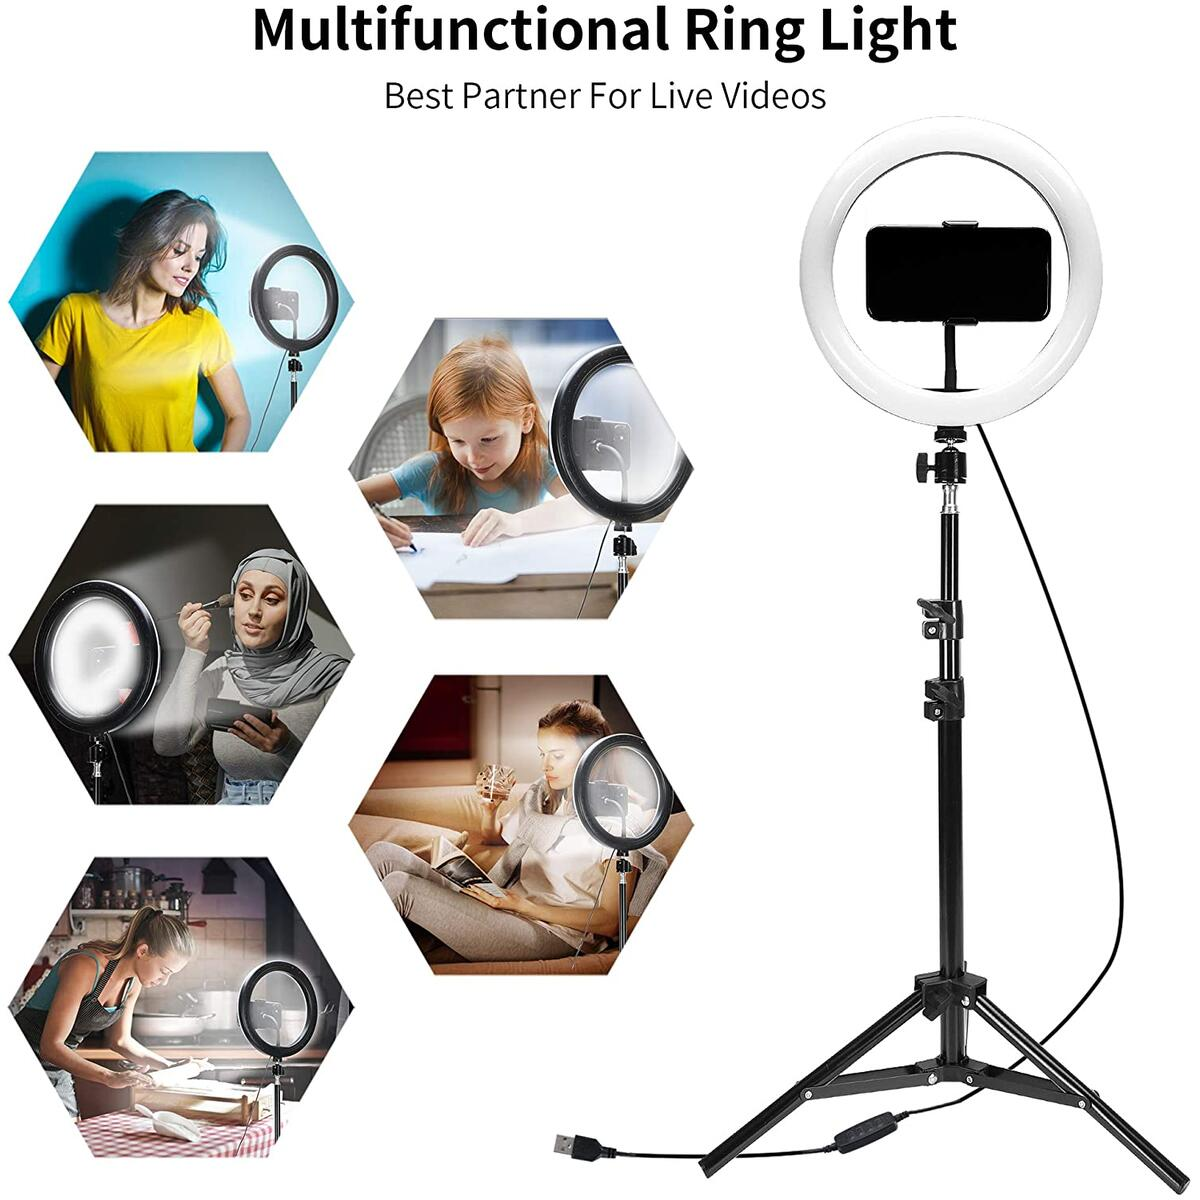 Flying Banana 10 inch Selfie Ring Light With Tripod Stand and Cell Phone Holder & Remote Control 3 Light Modes For YouTube Videos/Makeup Light/Live Streaming/Vlog Compatible For iPhone & Android Phone